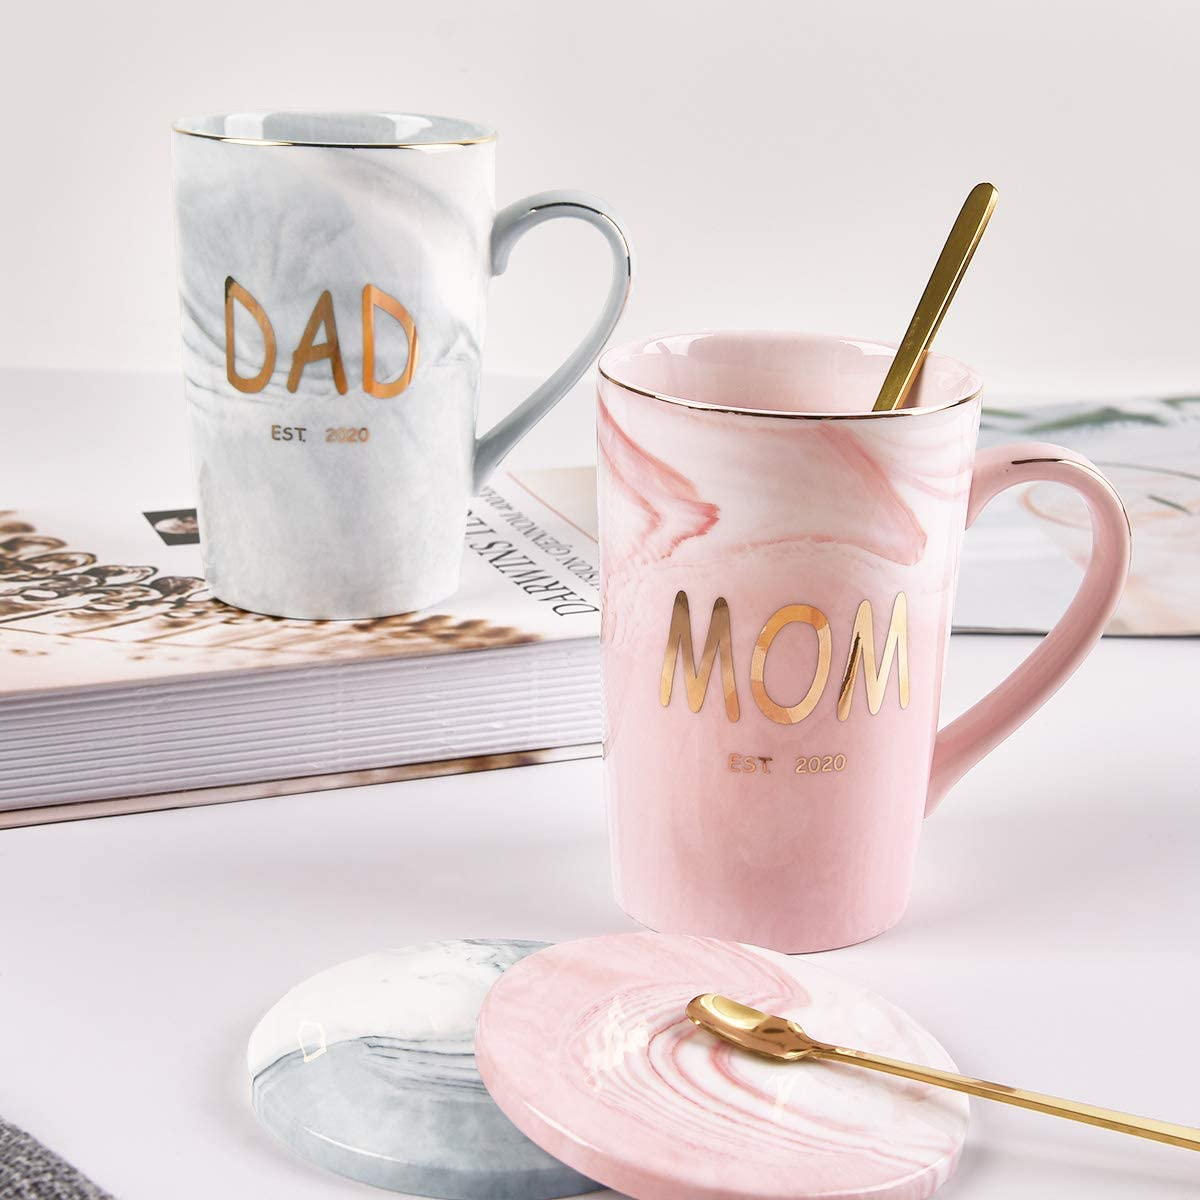 Mother Father Ceramic Mugs Cups from Daughter Son 15oz New Mom and Dad Gifts New Parents Gifts White Cedilis Mom and Dad Coffee Mug Set Exquisite Box Package with Spoons for Christmas